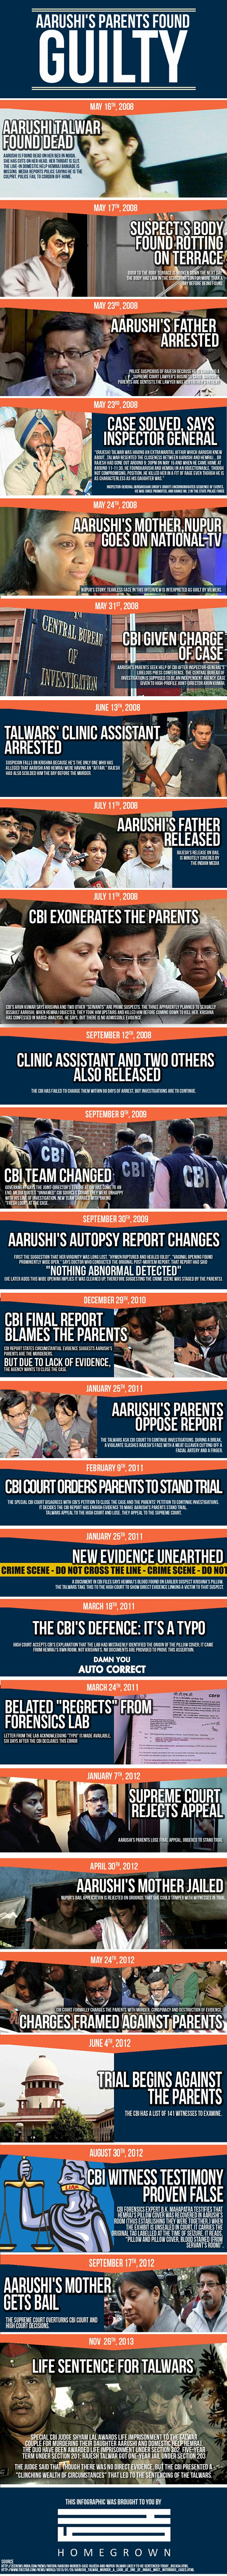 Infographic: The Arushi Talwar Murder Case Chronicled And Decoded   http://homegrown.co.in/infographic-the-arushi-talwar-murder-case-chronicled-and-decoded/